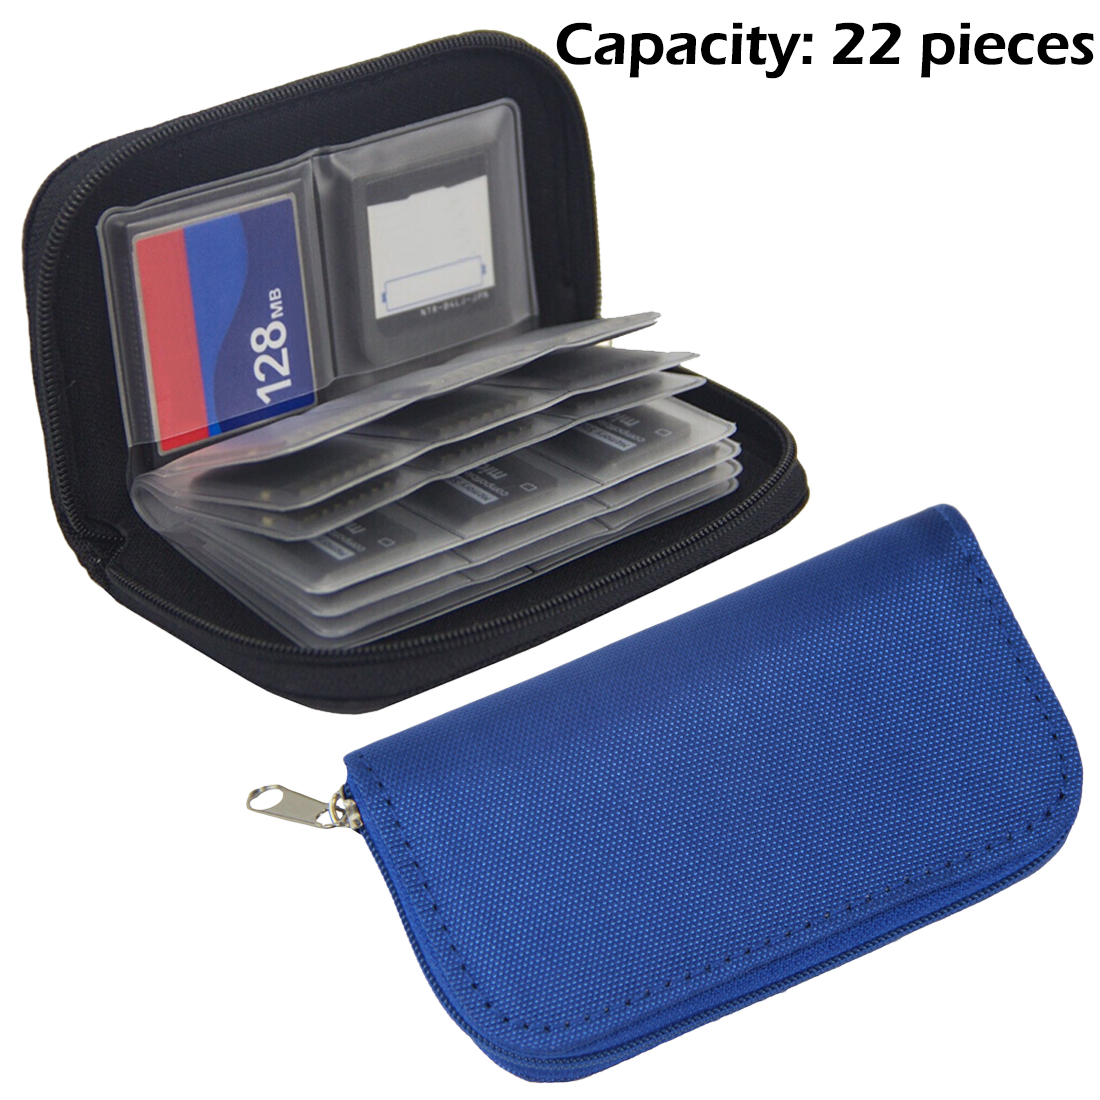 Portable Digital Camera SD SDHC MMC CF Micro SD Memory Card Storage Organization Wallet Case Bag 22 Slots CF Holder Blue